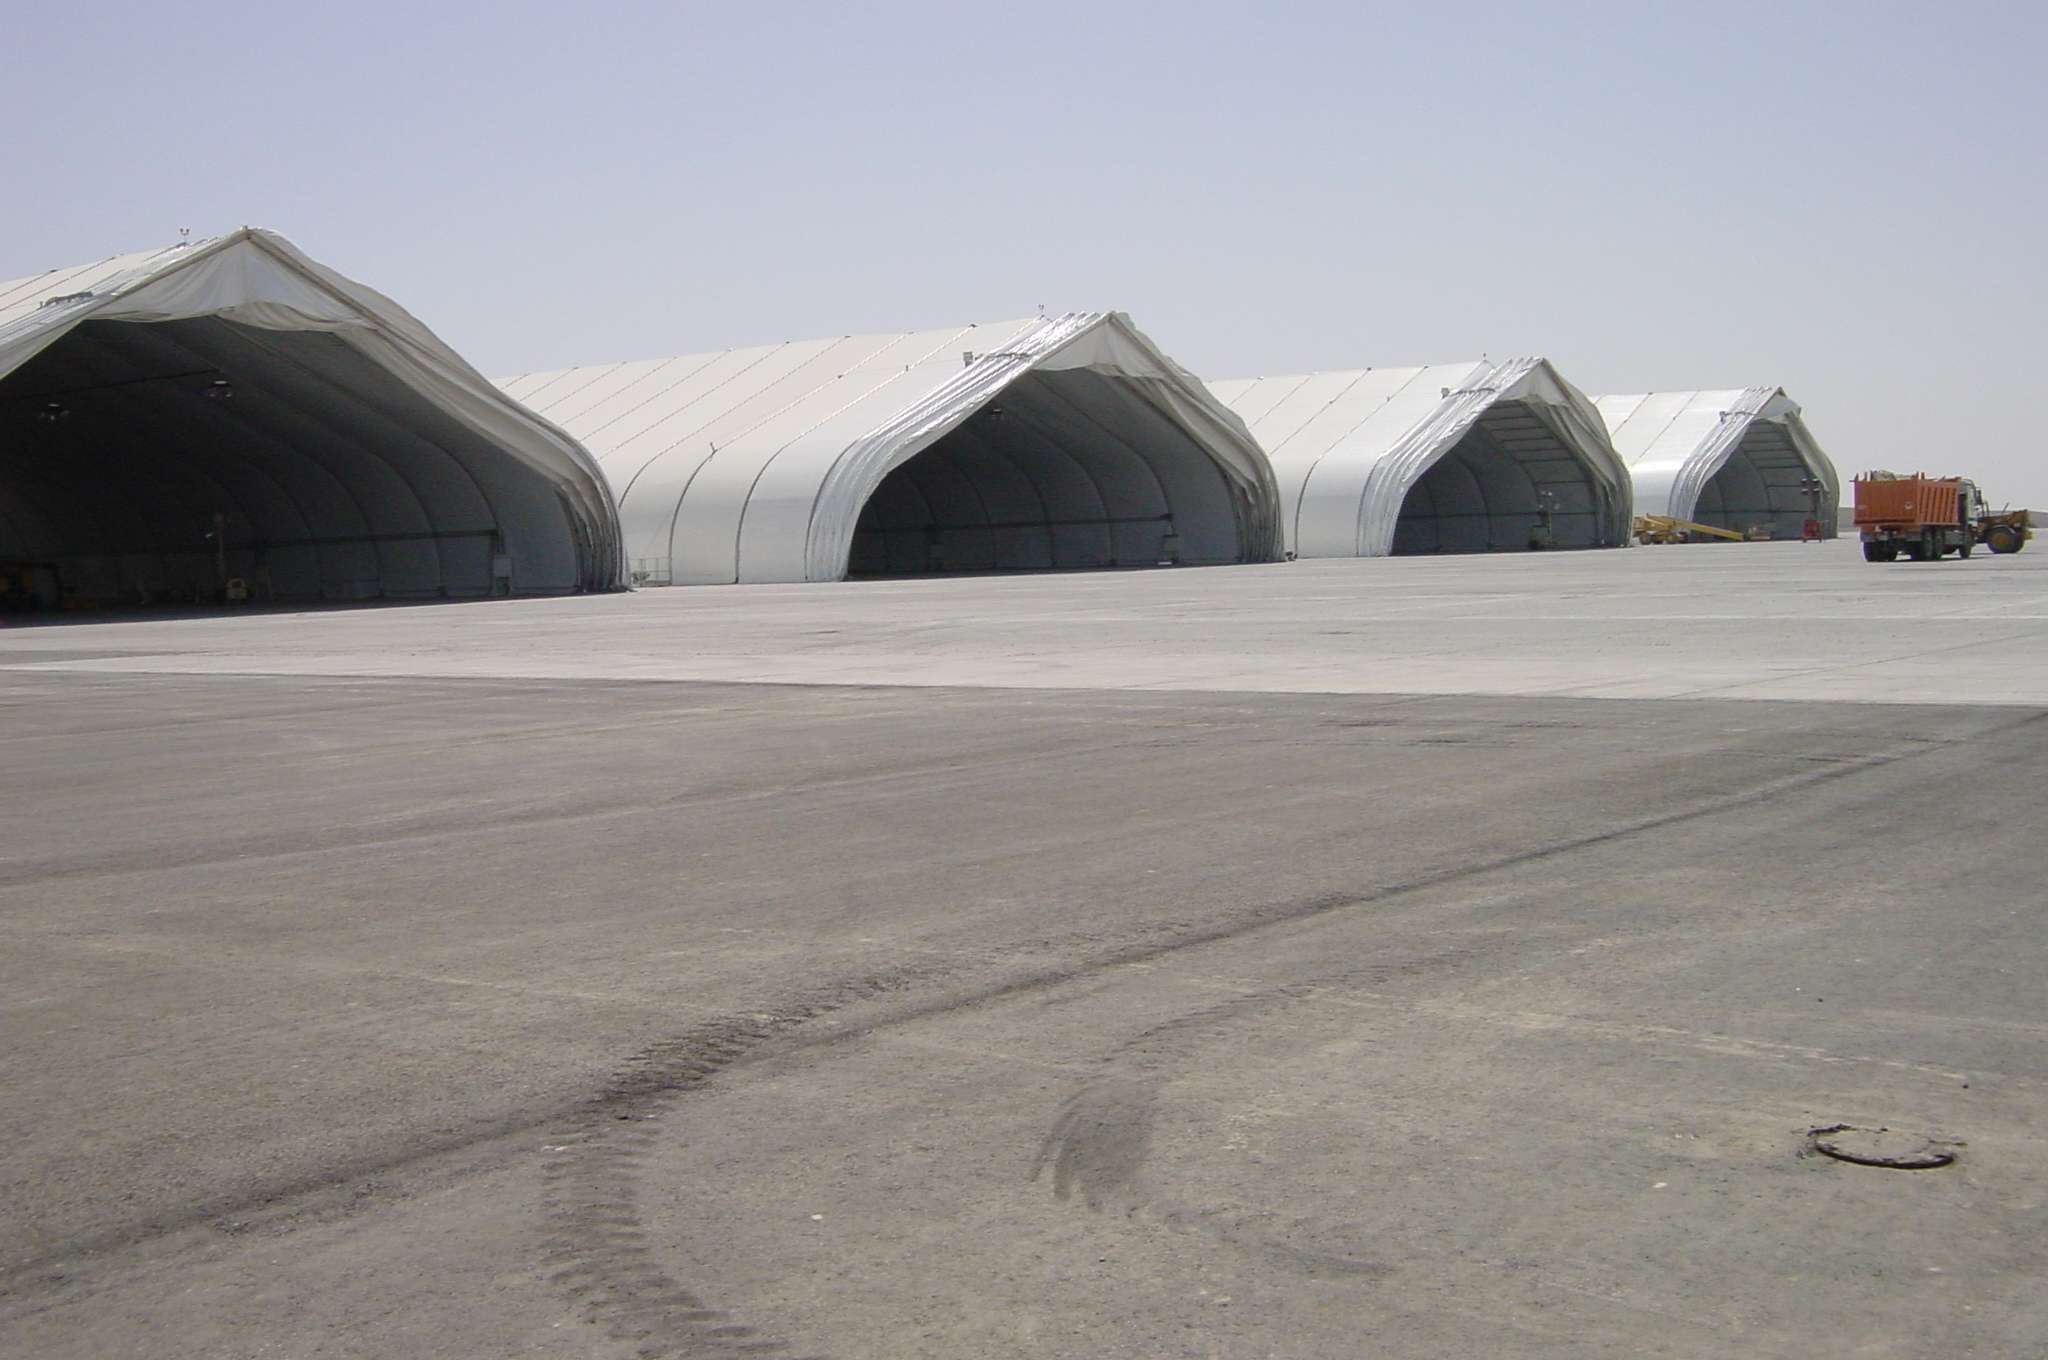 four fabric aircraft hangars for airplane fleet storage and maintenance operations on airport tarmac